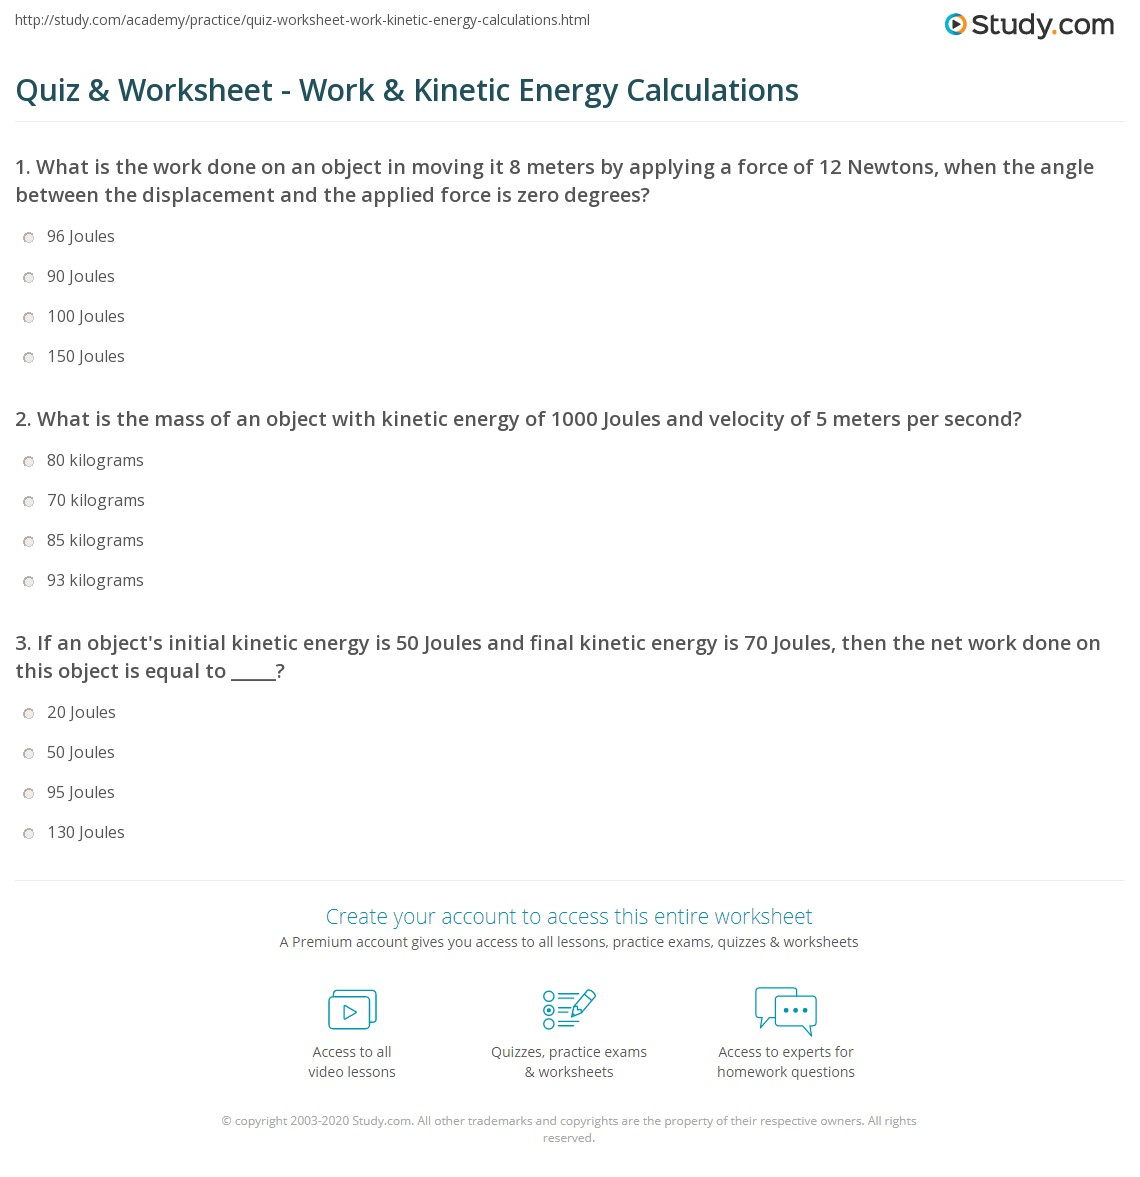 Quiz & Worksheet - Work & Kinetic Energy Calculations | Study.com